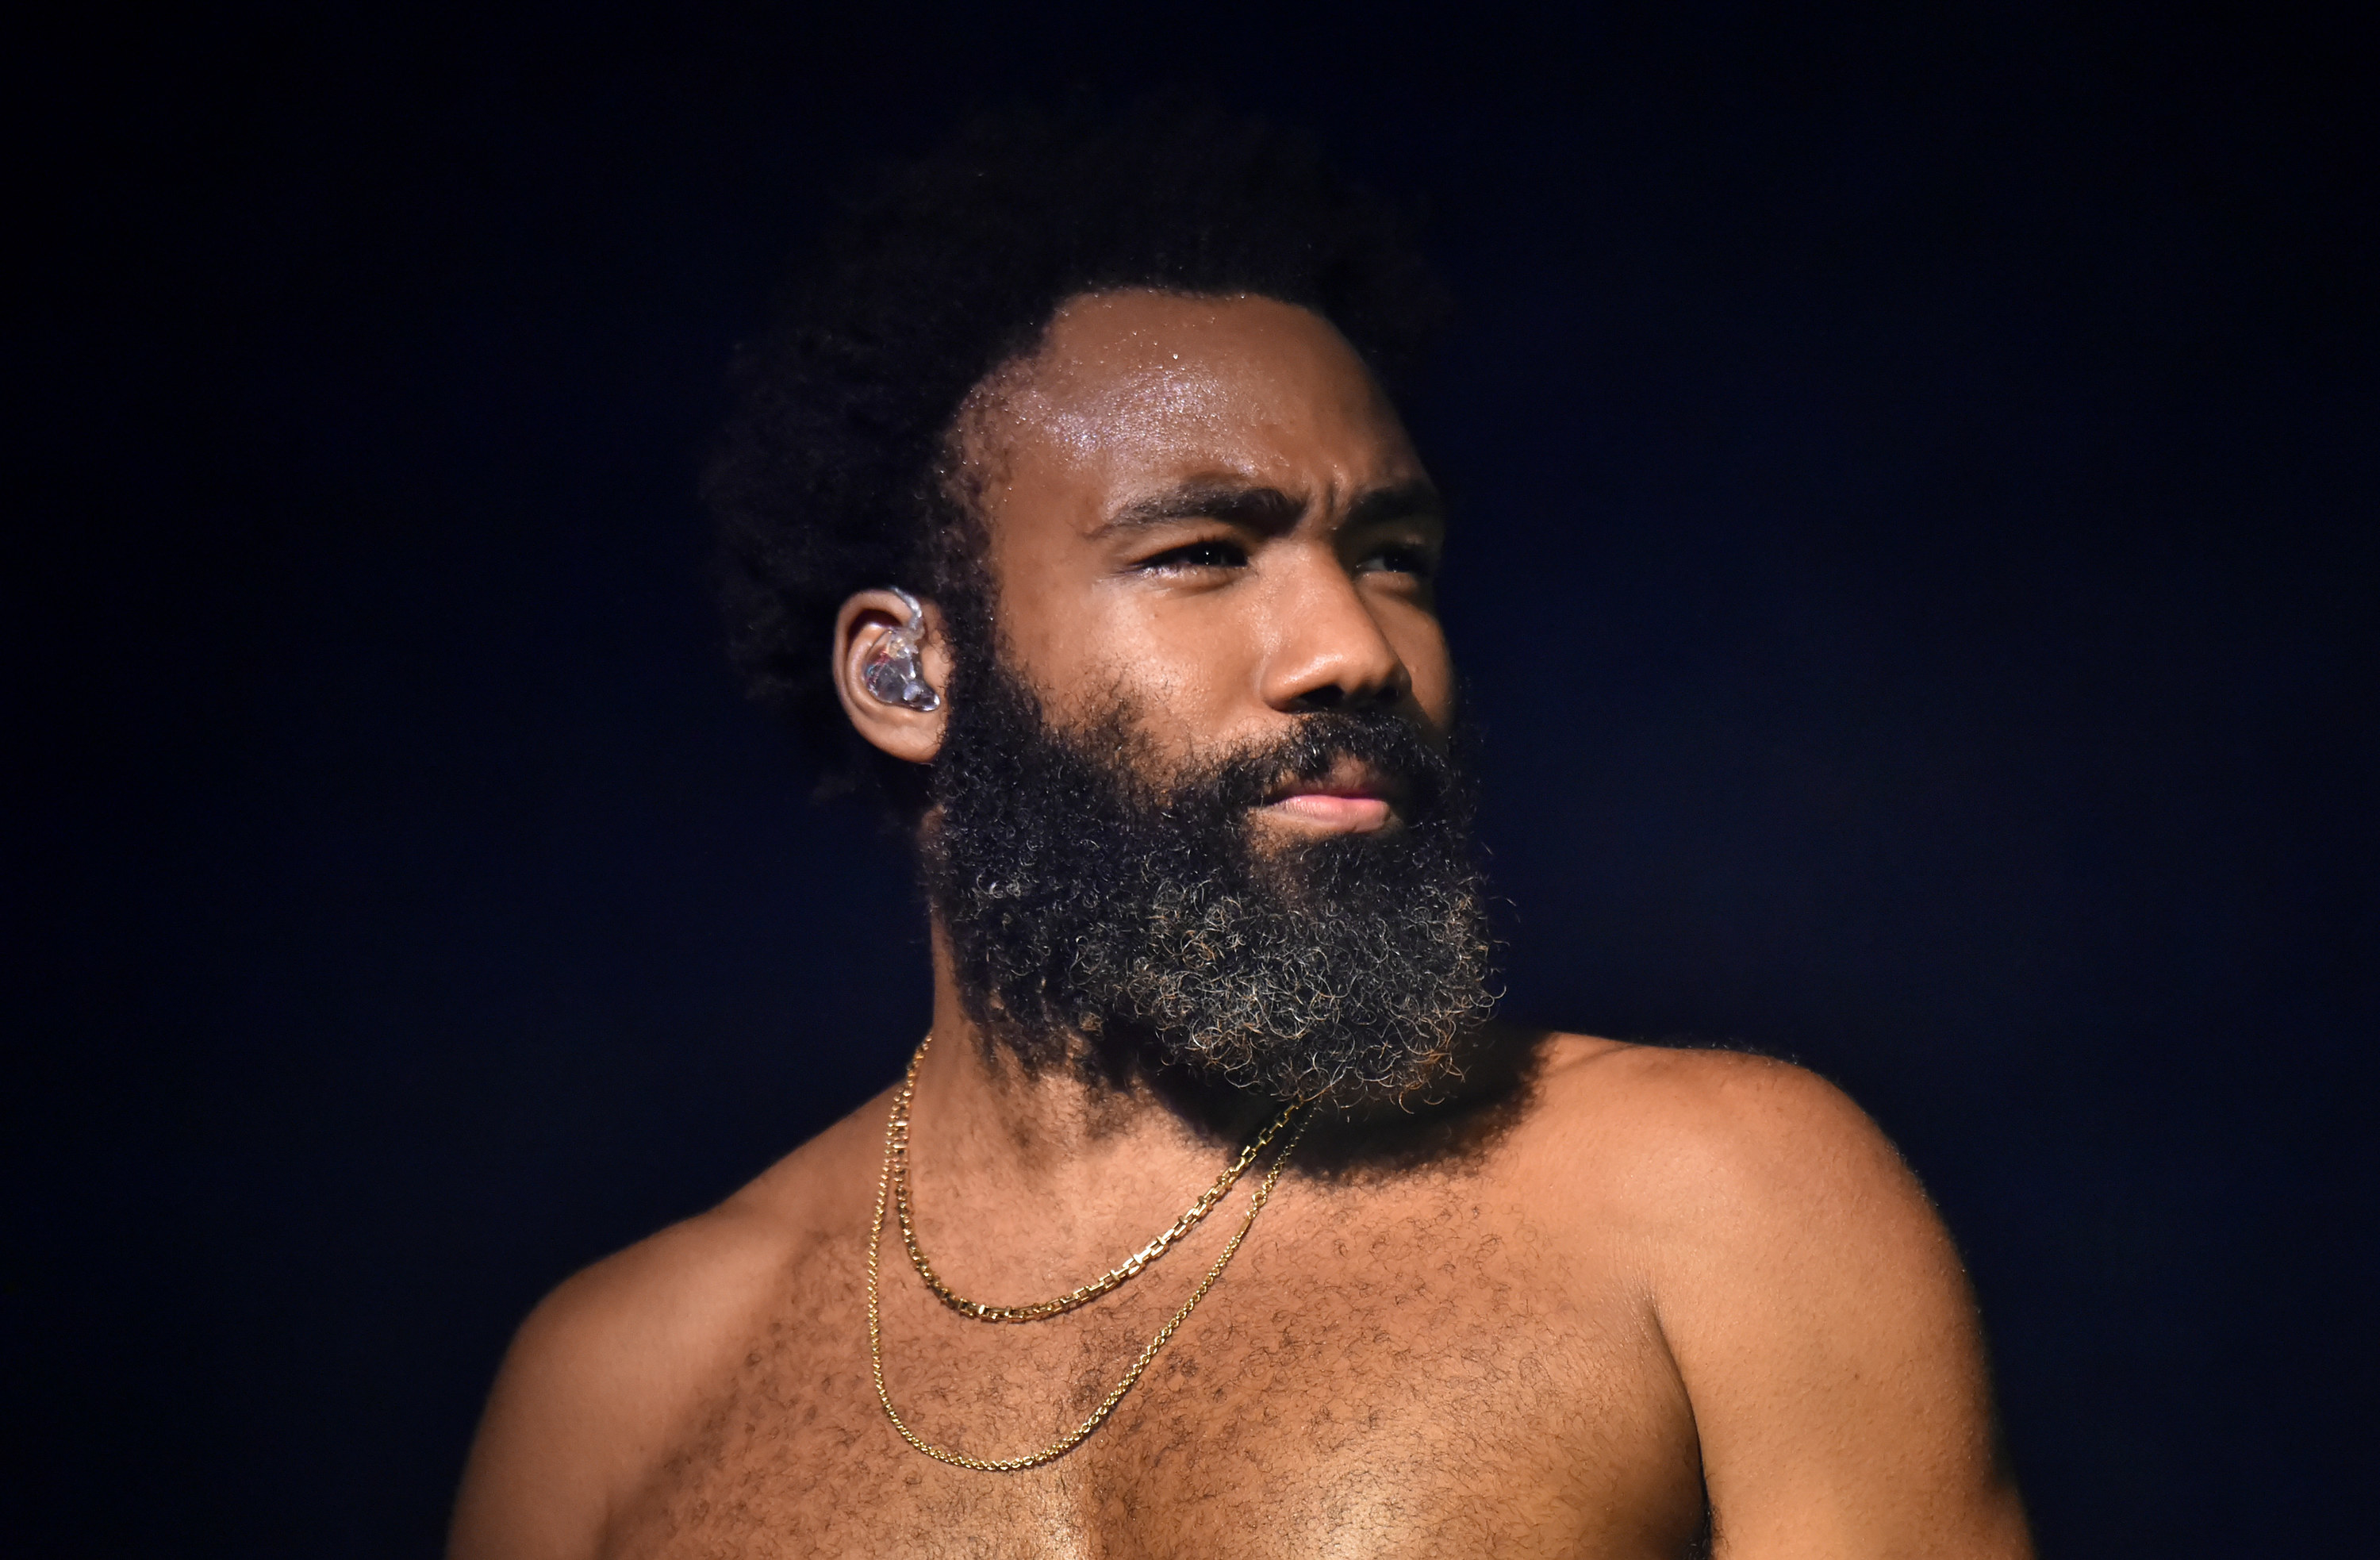 Donald Glover performs as Childish Gambino at the 2019 Outside Lands festival in San Francisco